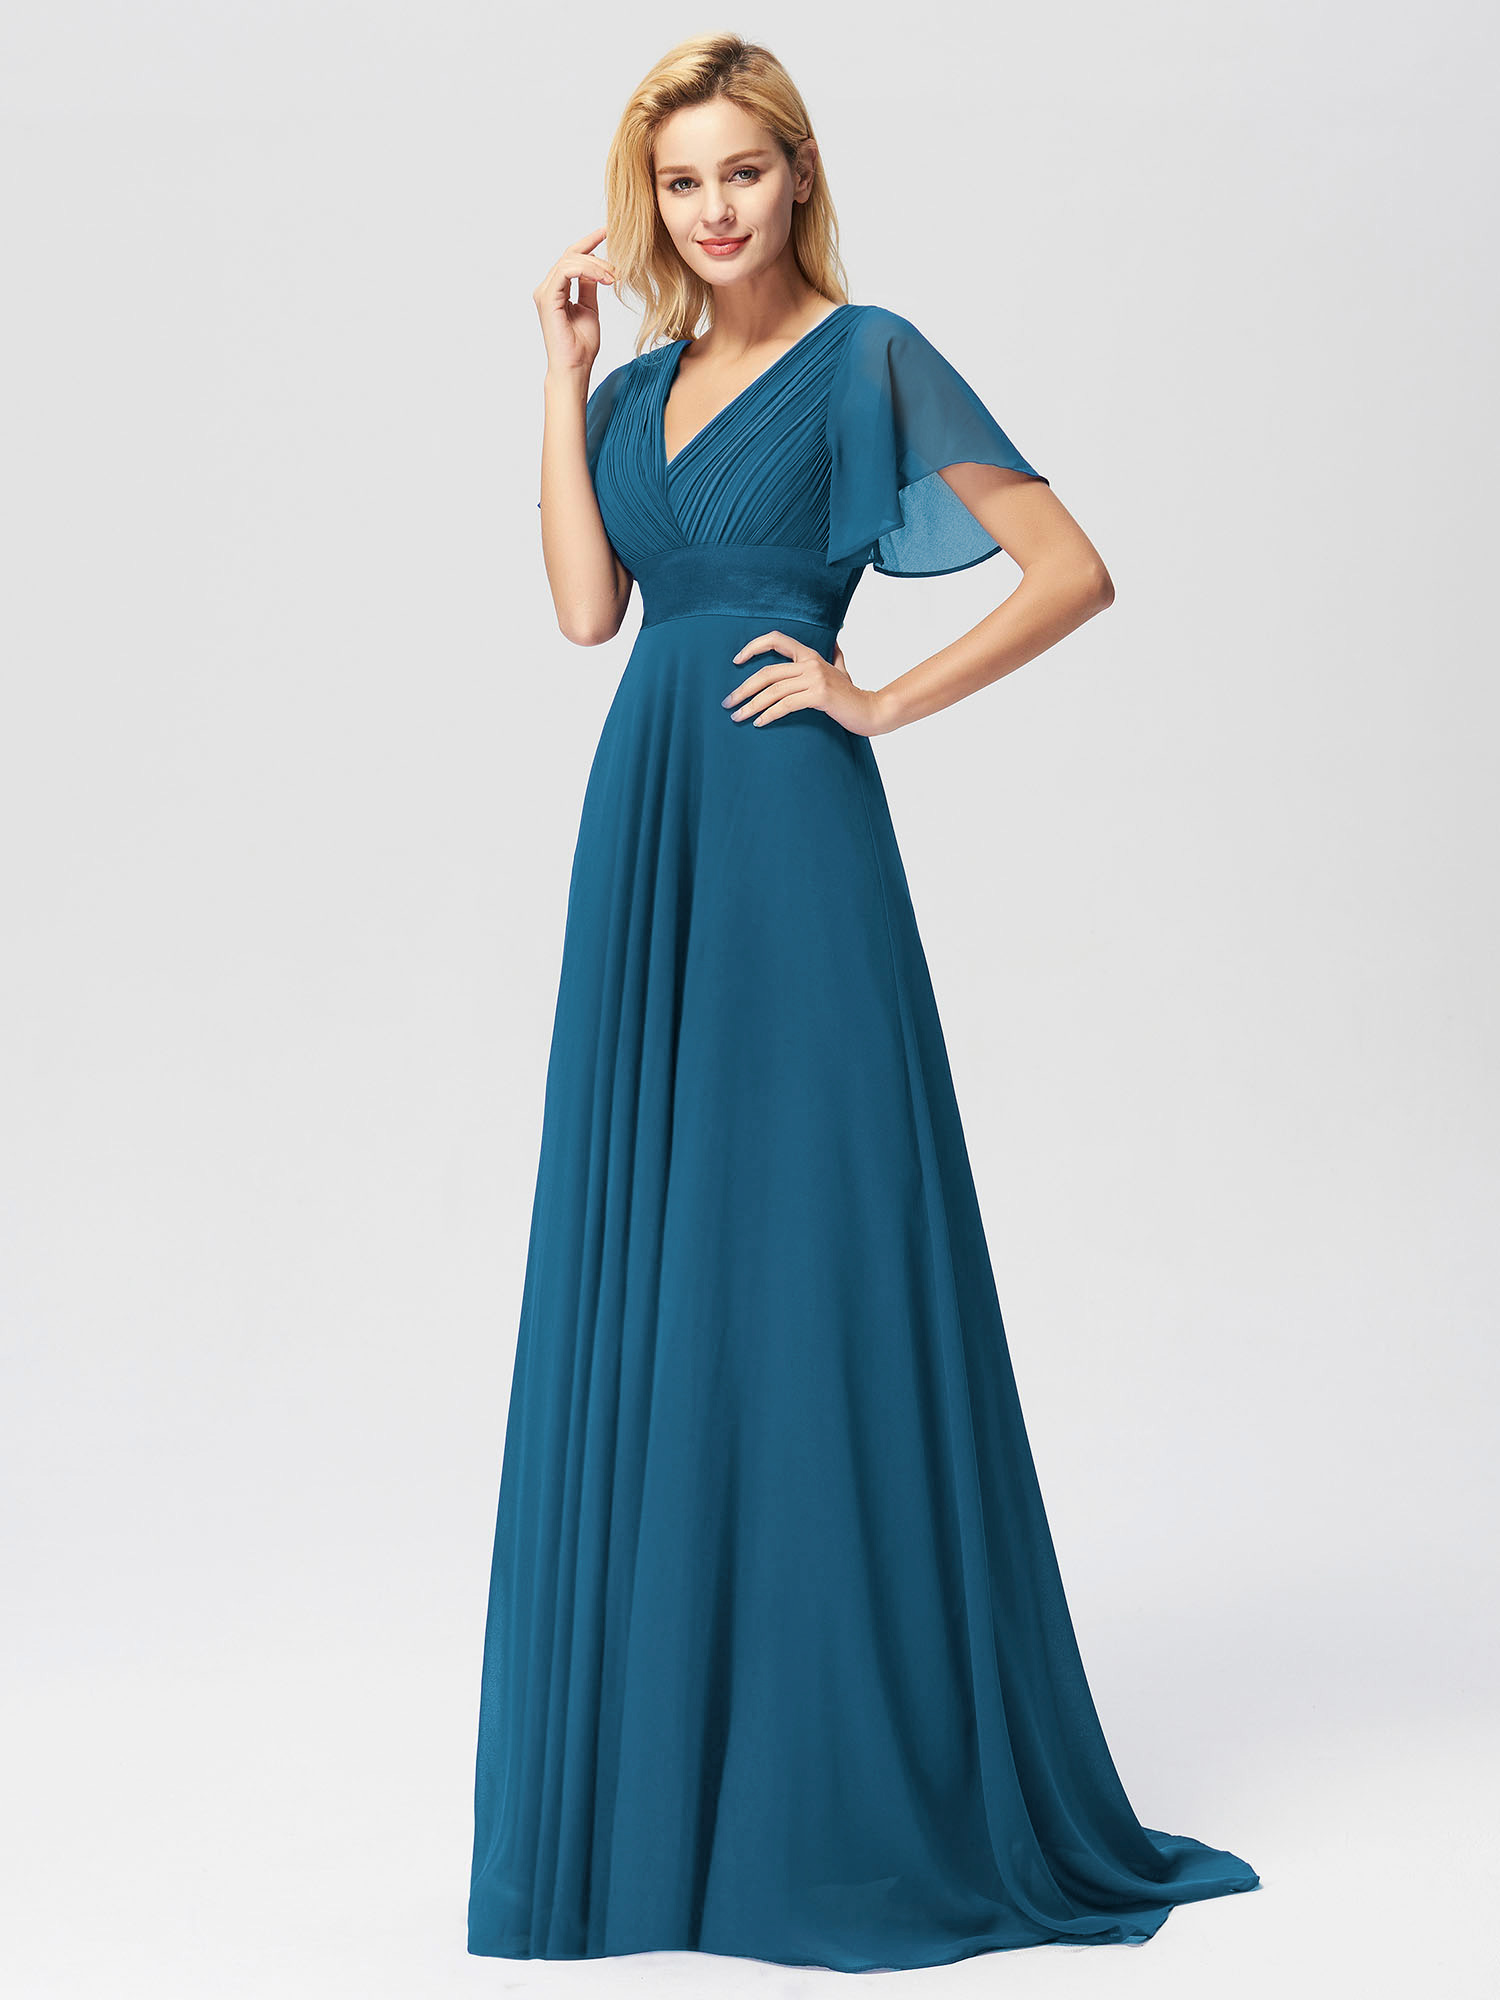 Ever-pretty-US-Short-Sleeve-Evening-Prom-Gown-Long-Formal-Cocktail-Party-Dresses thumbnail 12